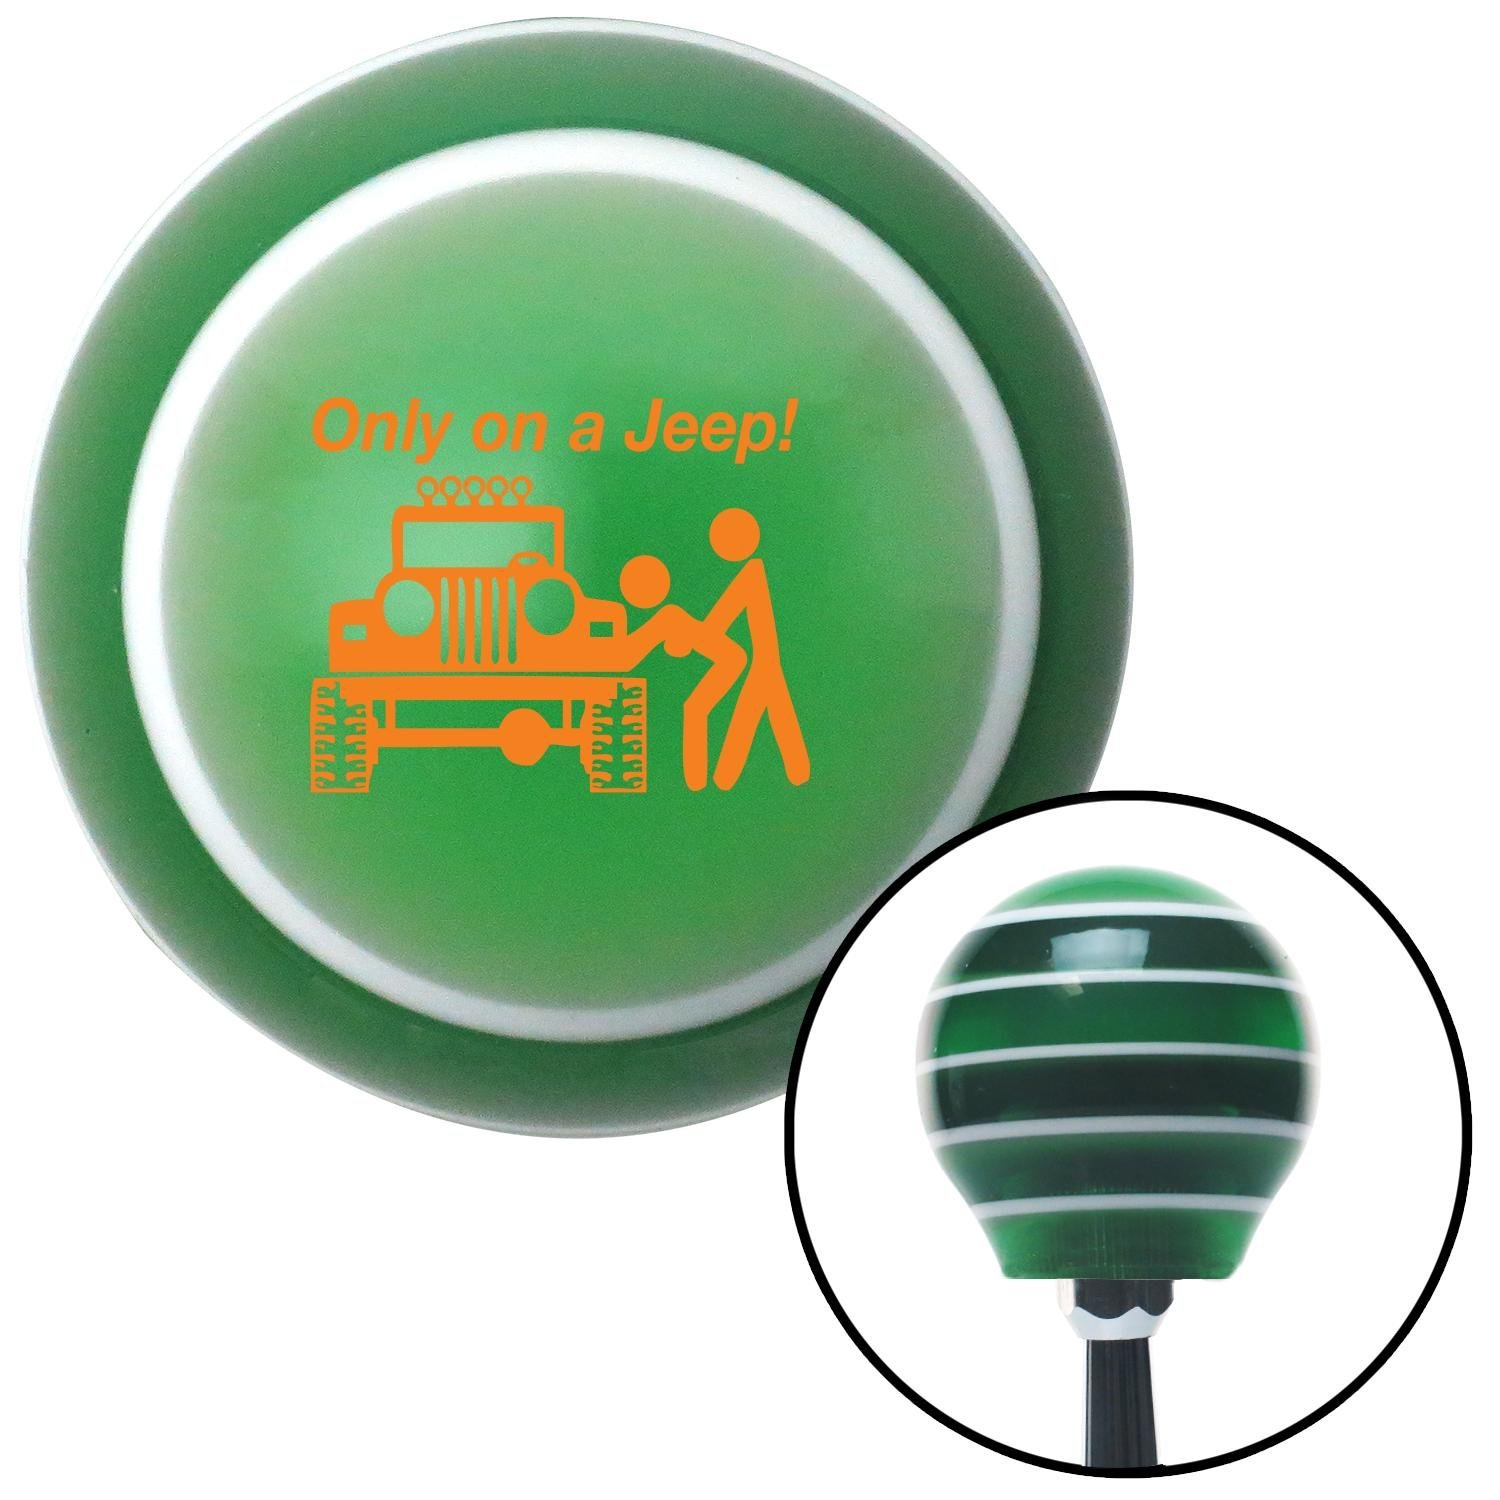 American Shifter 121547 Green Stripe Shift Knob with M16 x 1.5 Insert Orange Only On A Jeep